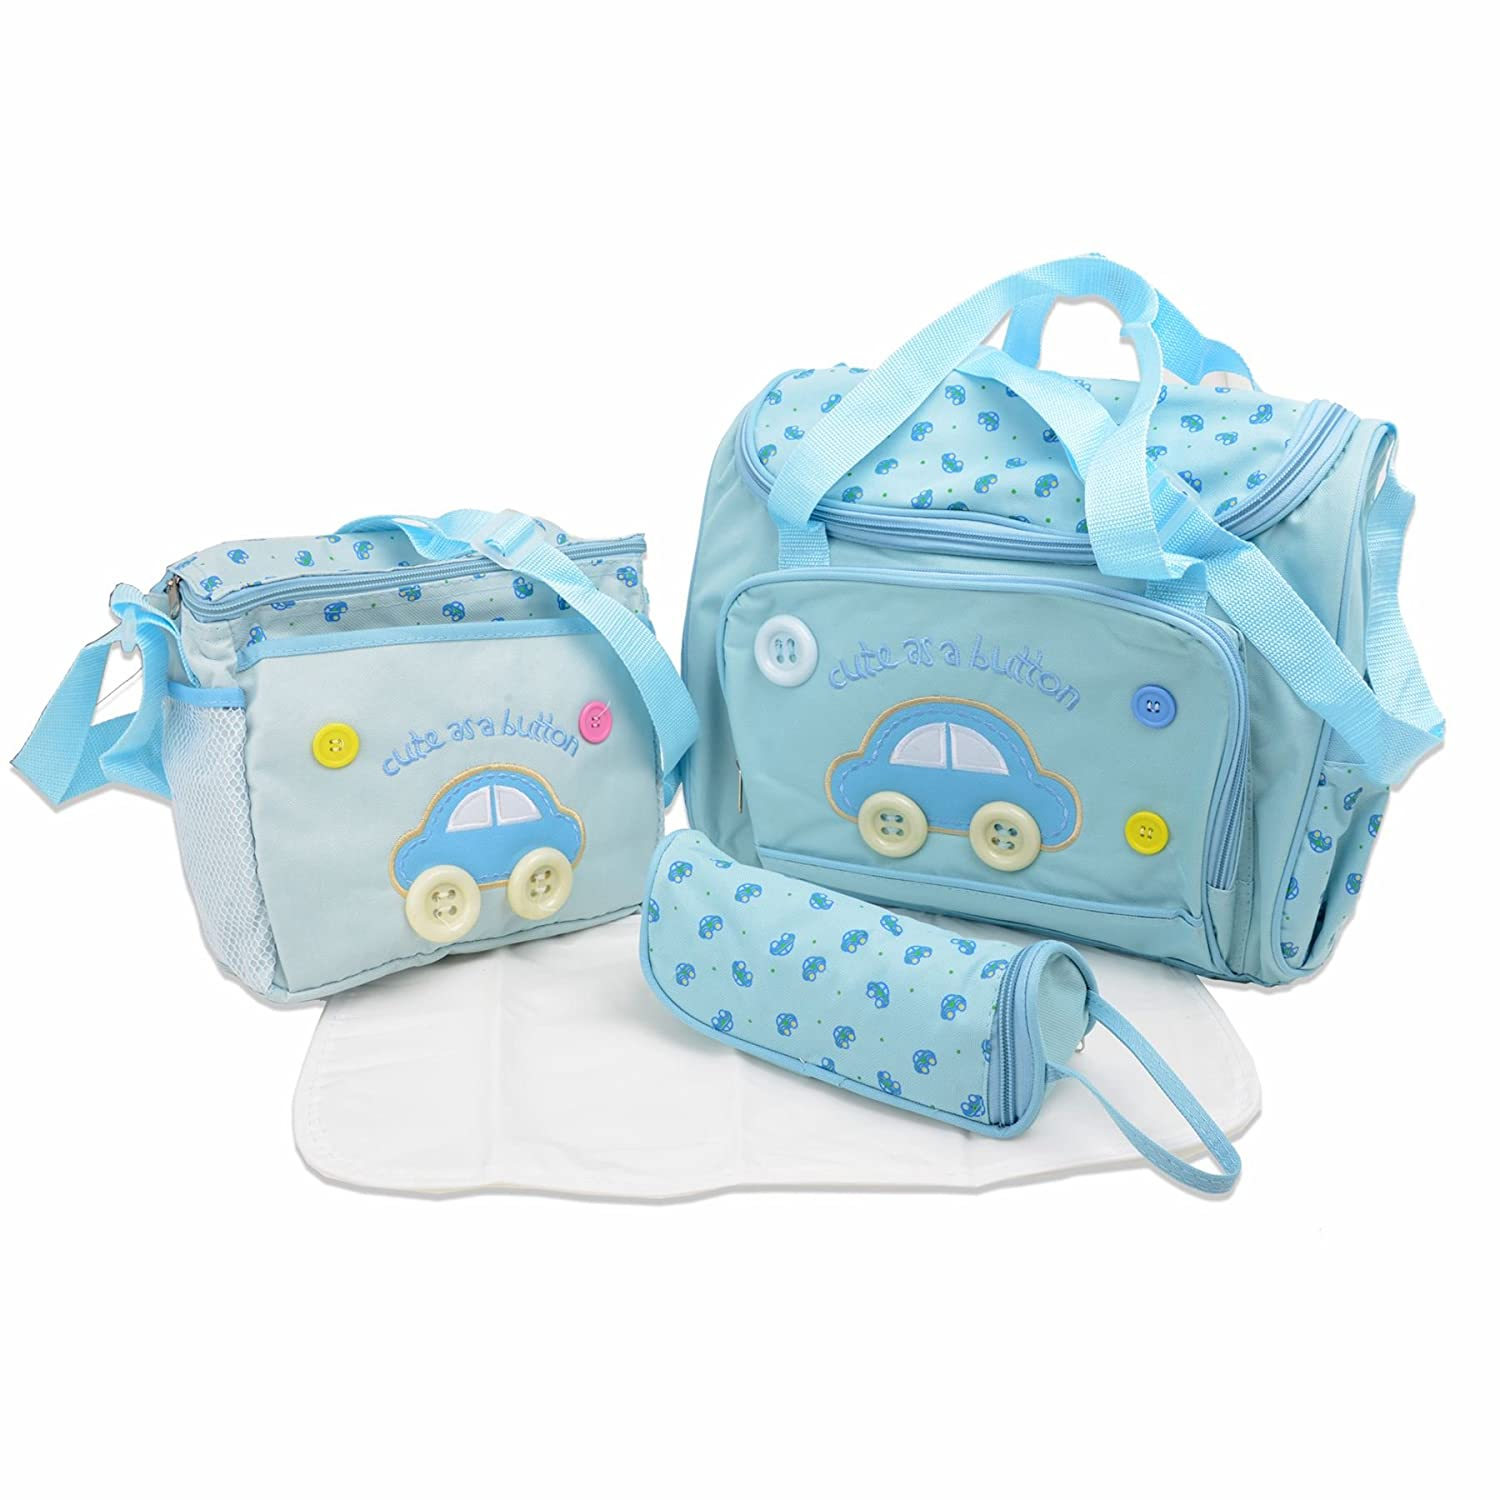 Cute as a Button - 4 piece Nappy Changing Baby Diaper 4pcs Bag set - including Change mat (Dark Blue) Babyhugs Babyhugs-0136